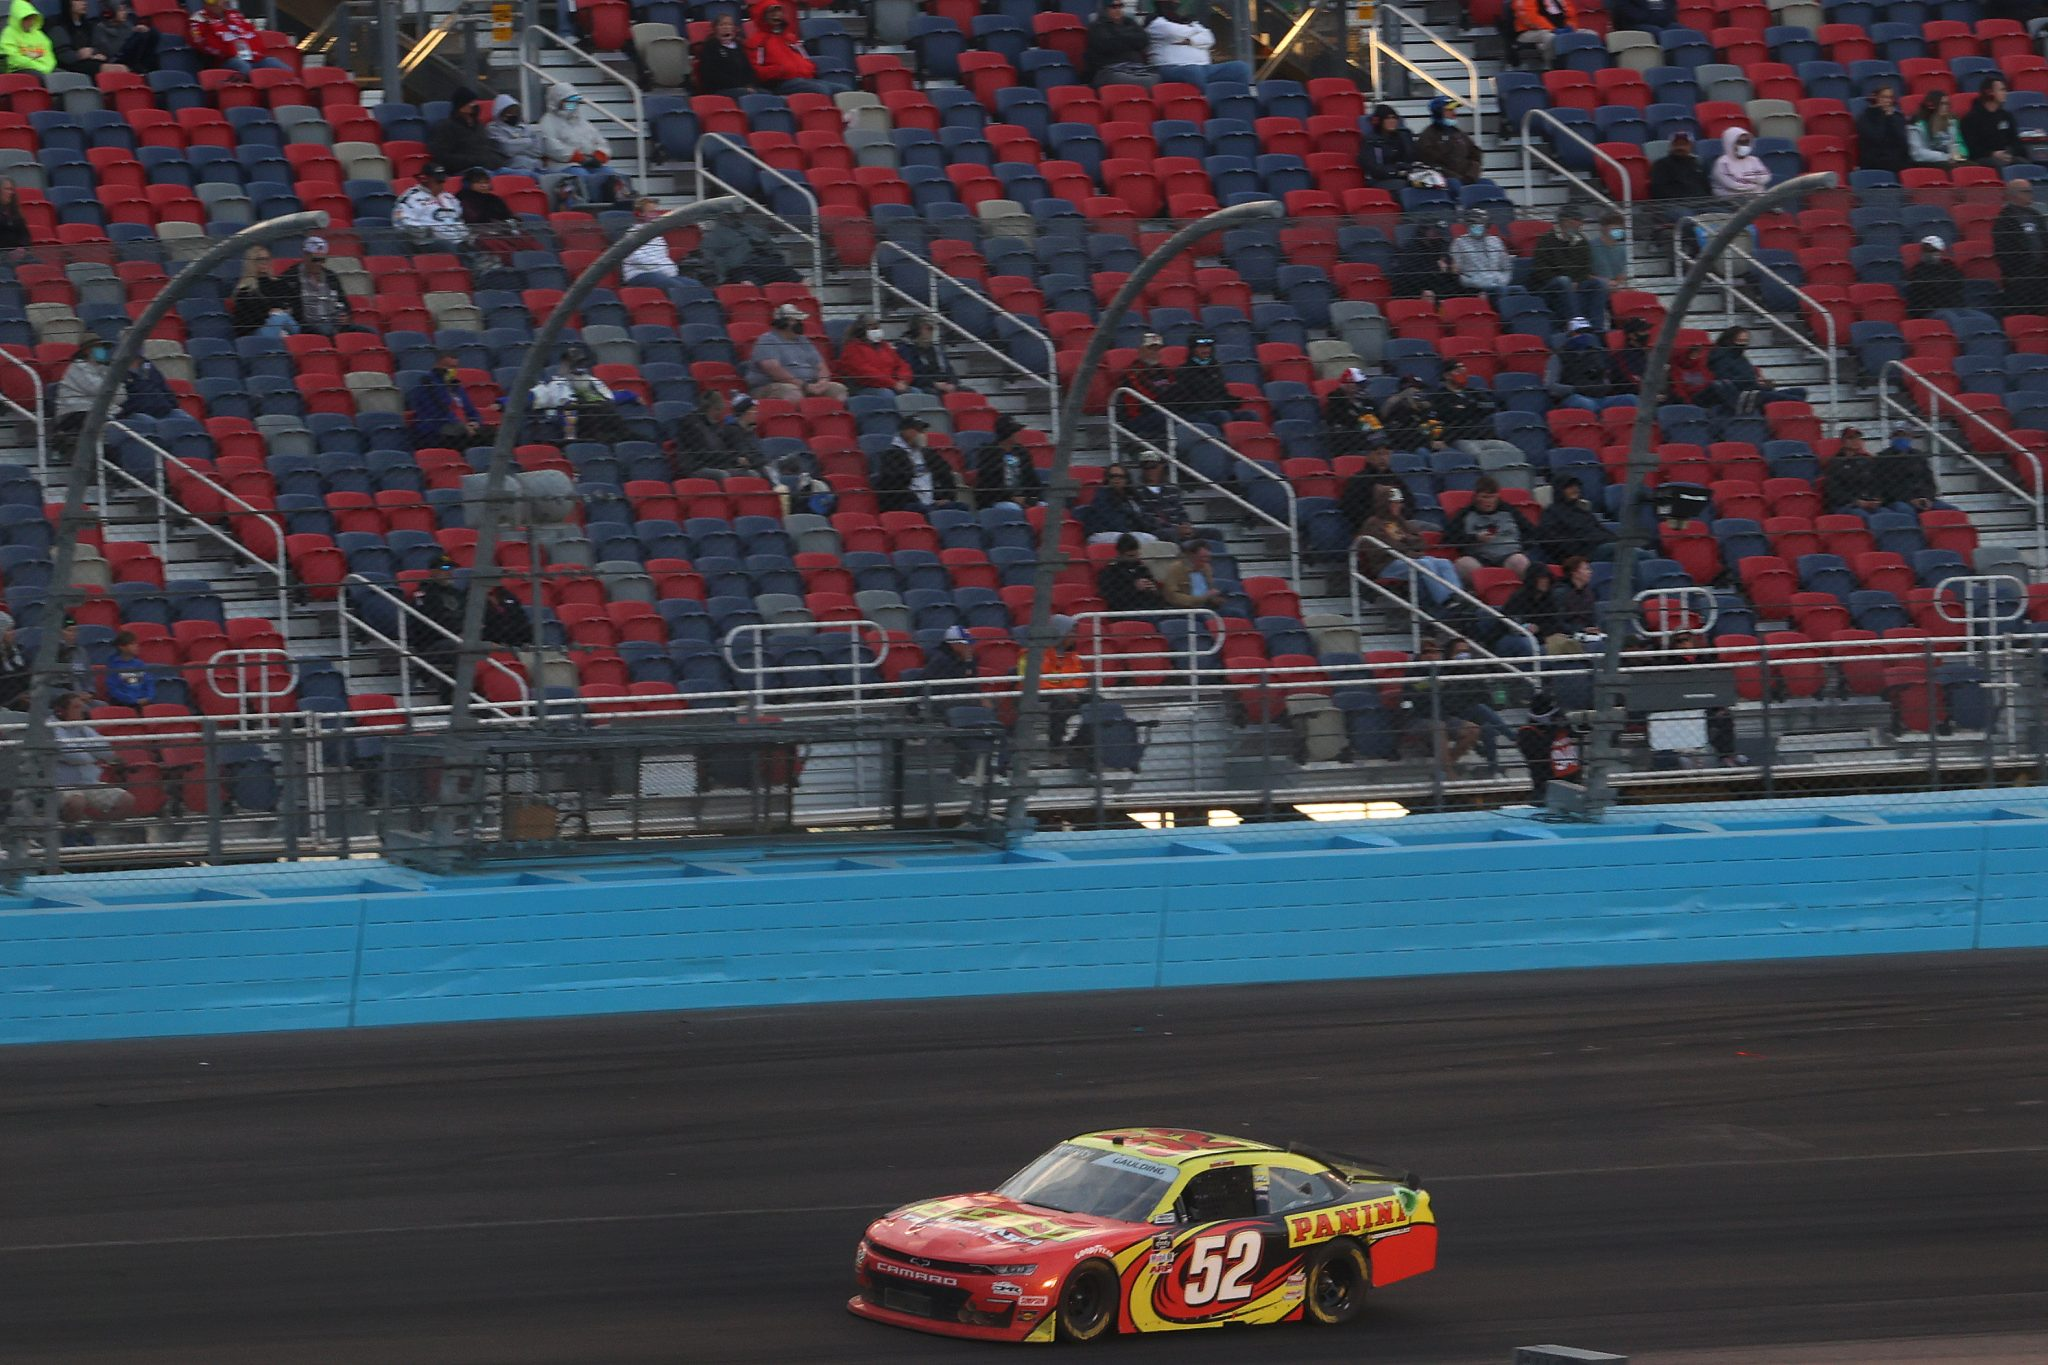 AVONDALE, ARIZONA - MARCH 13: Gray Gaulding, driver of the #52 Means Motorsports Chevrolet Camaro, drives during the NASCAR Xfinity Series Call 811 Before You Dig 200 presented by Arizona 811 at Phoenix Raceway on March 13, 2021 in Avondale, Arizona. (Photo by Abbie Parr/Getty Images) | Getty Images